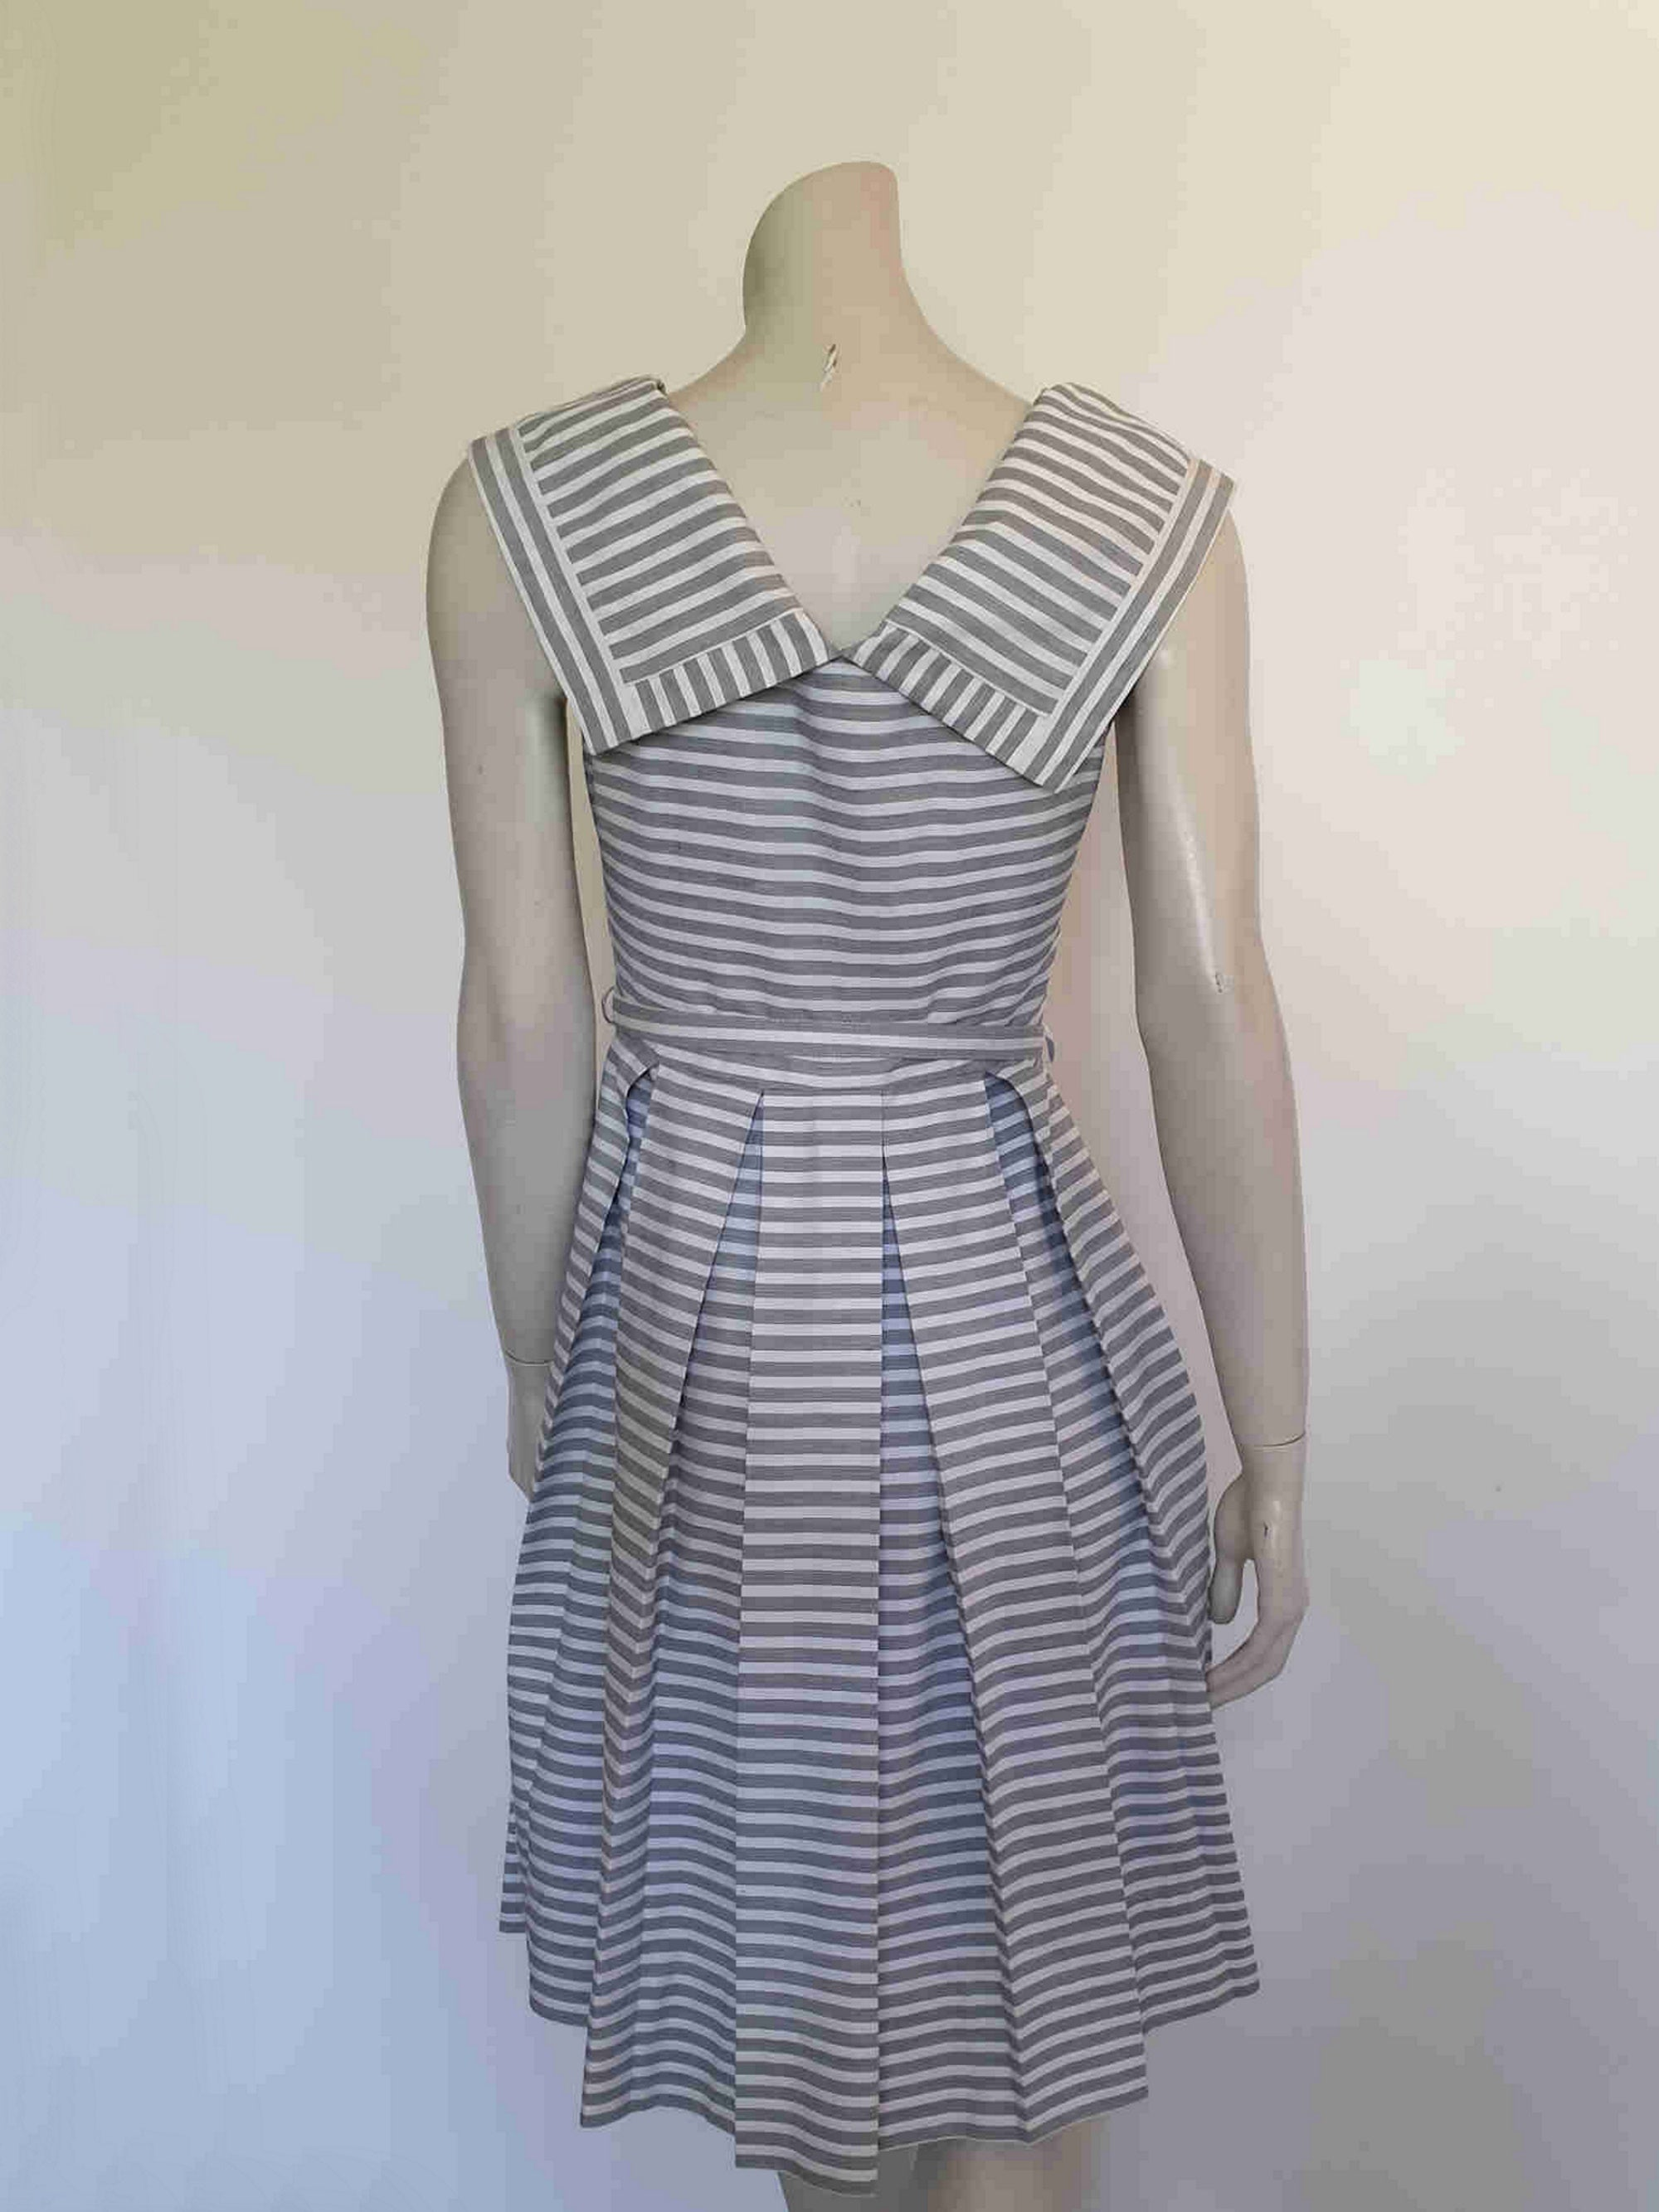 1960s vintage dress with portrait collar and box pleated skirt by leroy